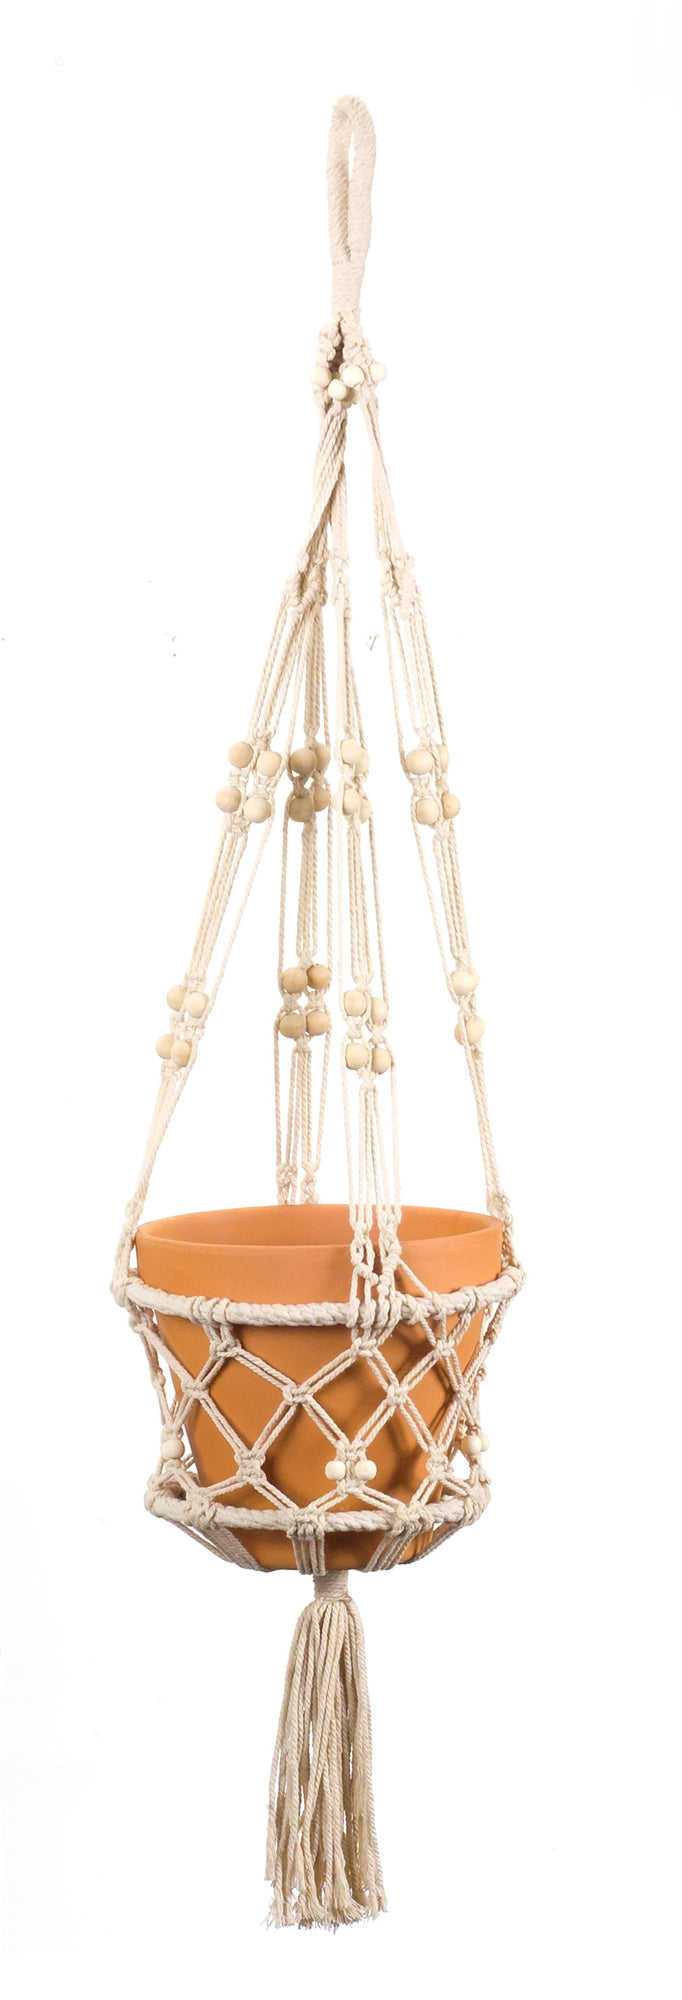 Macrame Pot Holder (Set of 4) 40